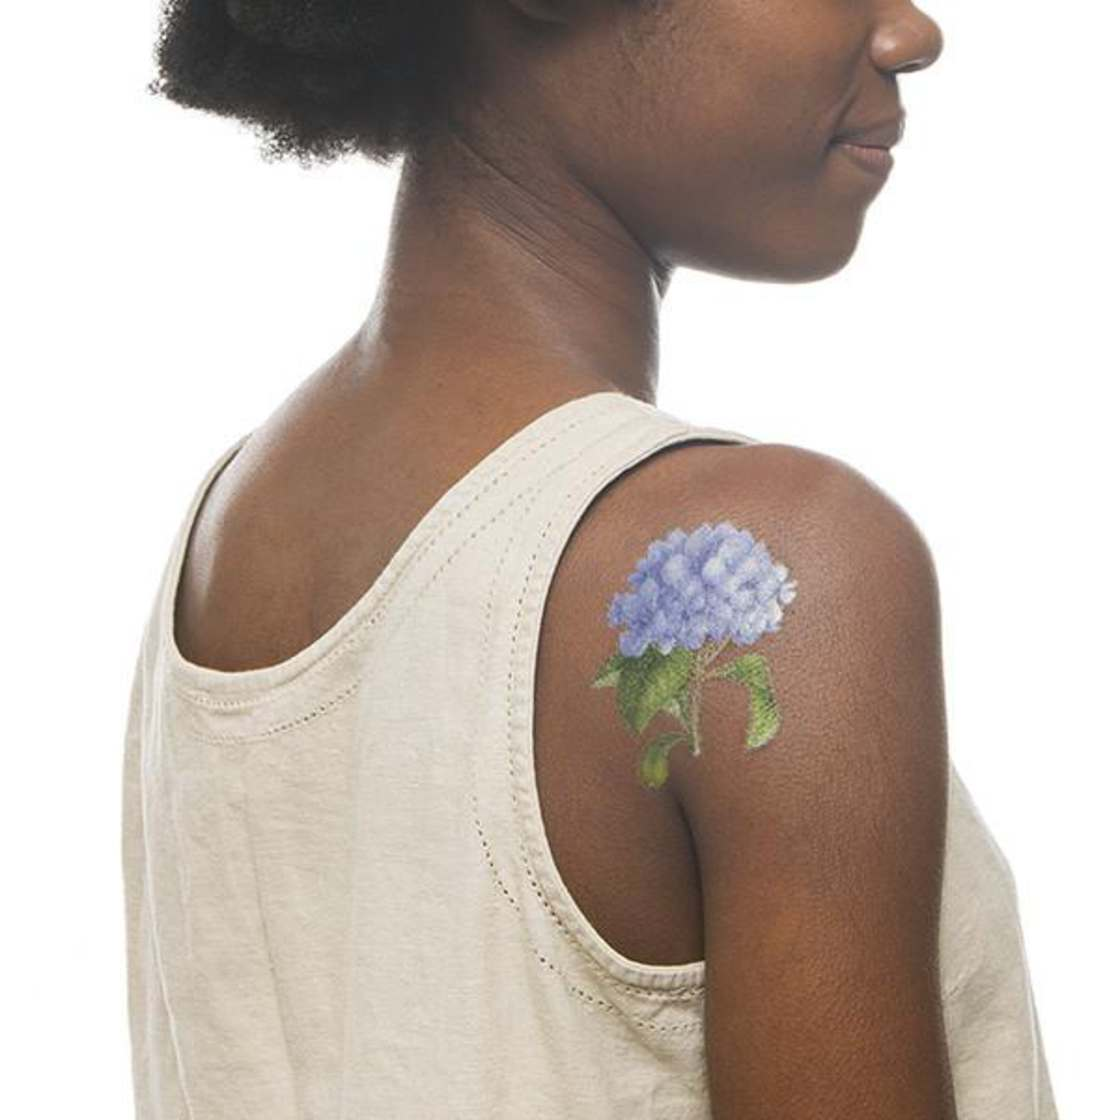 Scented ephemeral tattoos to smell good during the summer!